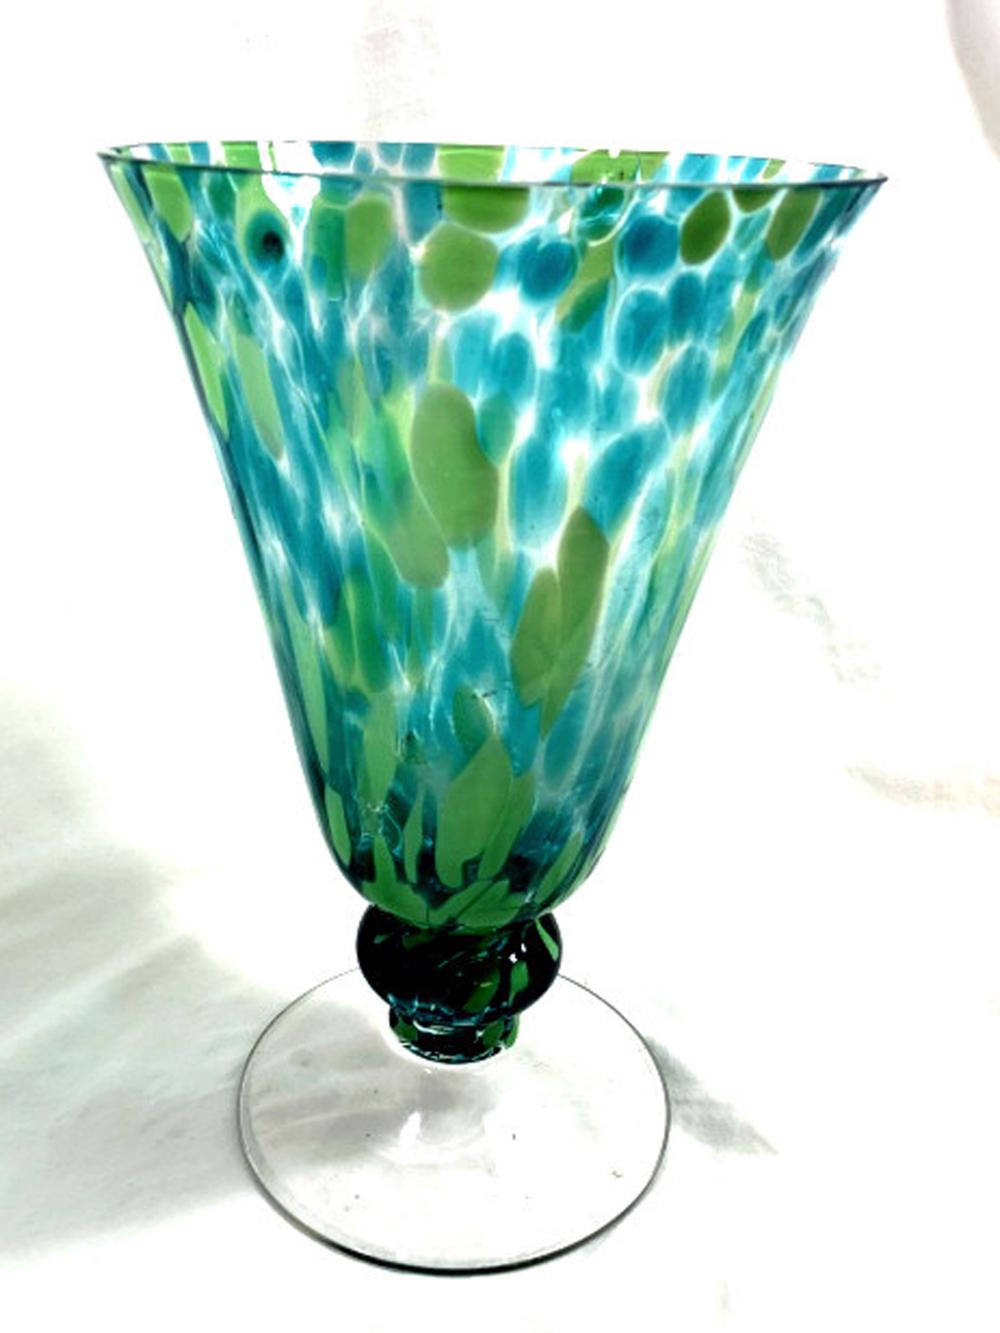 Lot 87: EXQUISITE YELLOW/GREEN/ SPOTTED VENETIAN GLASS VASE